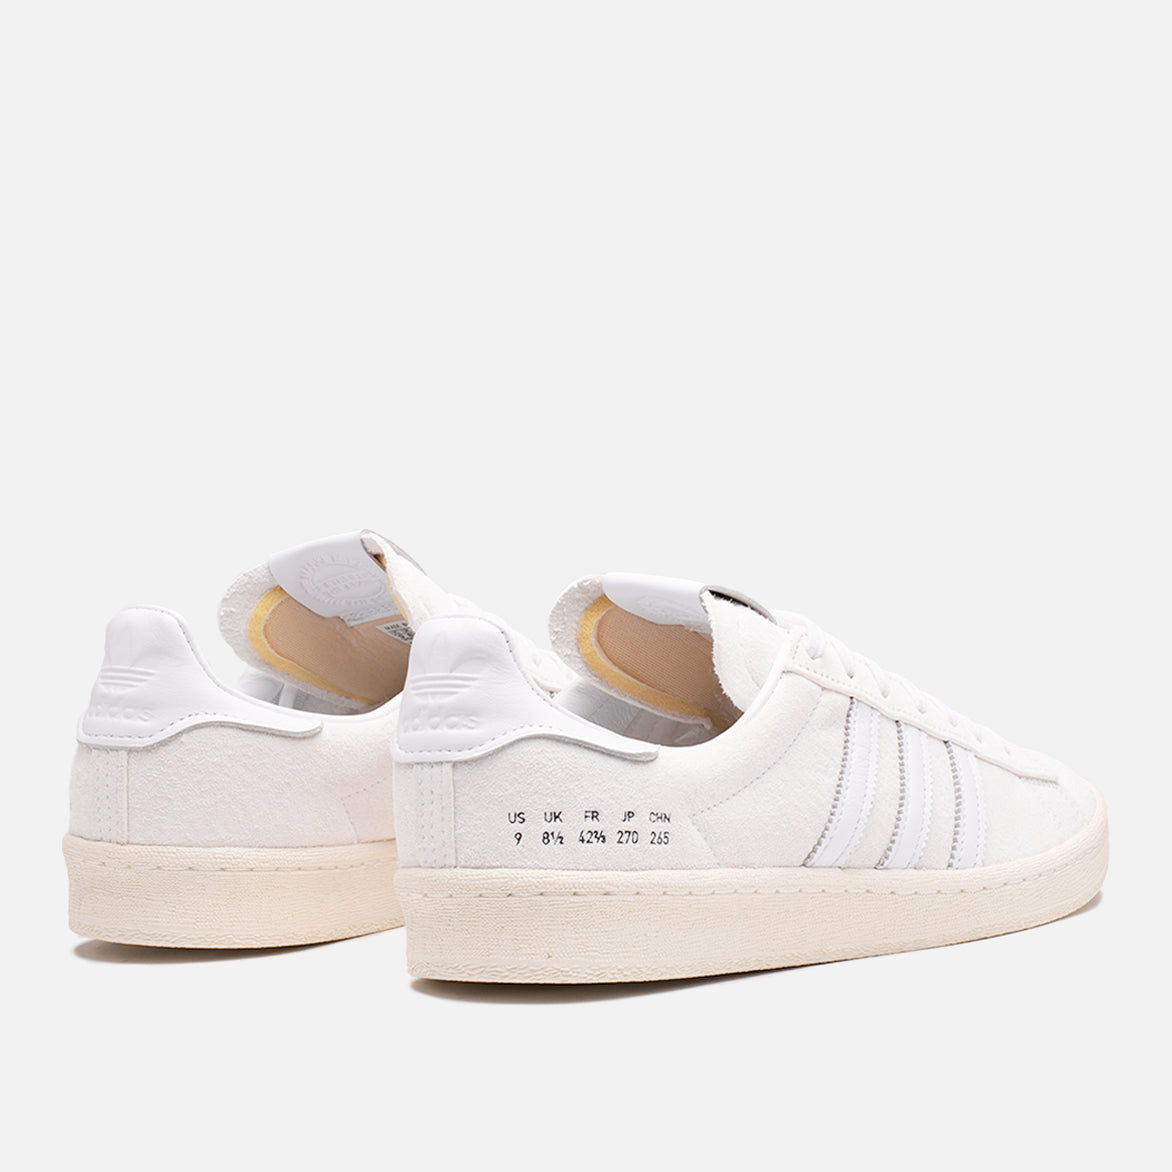 CAMPUS 80S - SUPPLIER COLOR / CLOUD WHITE